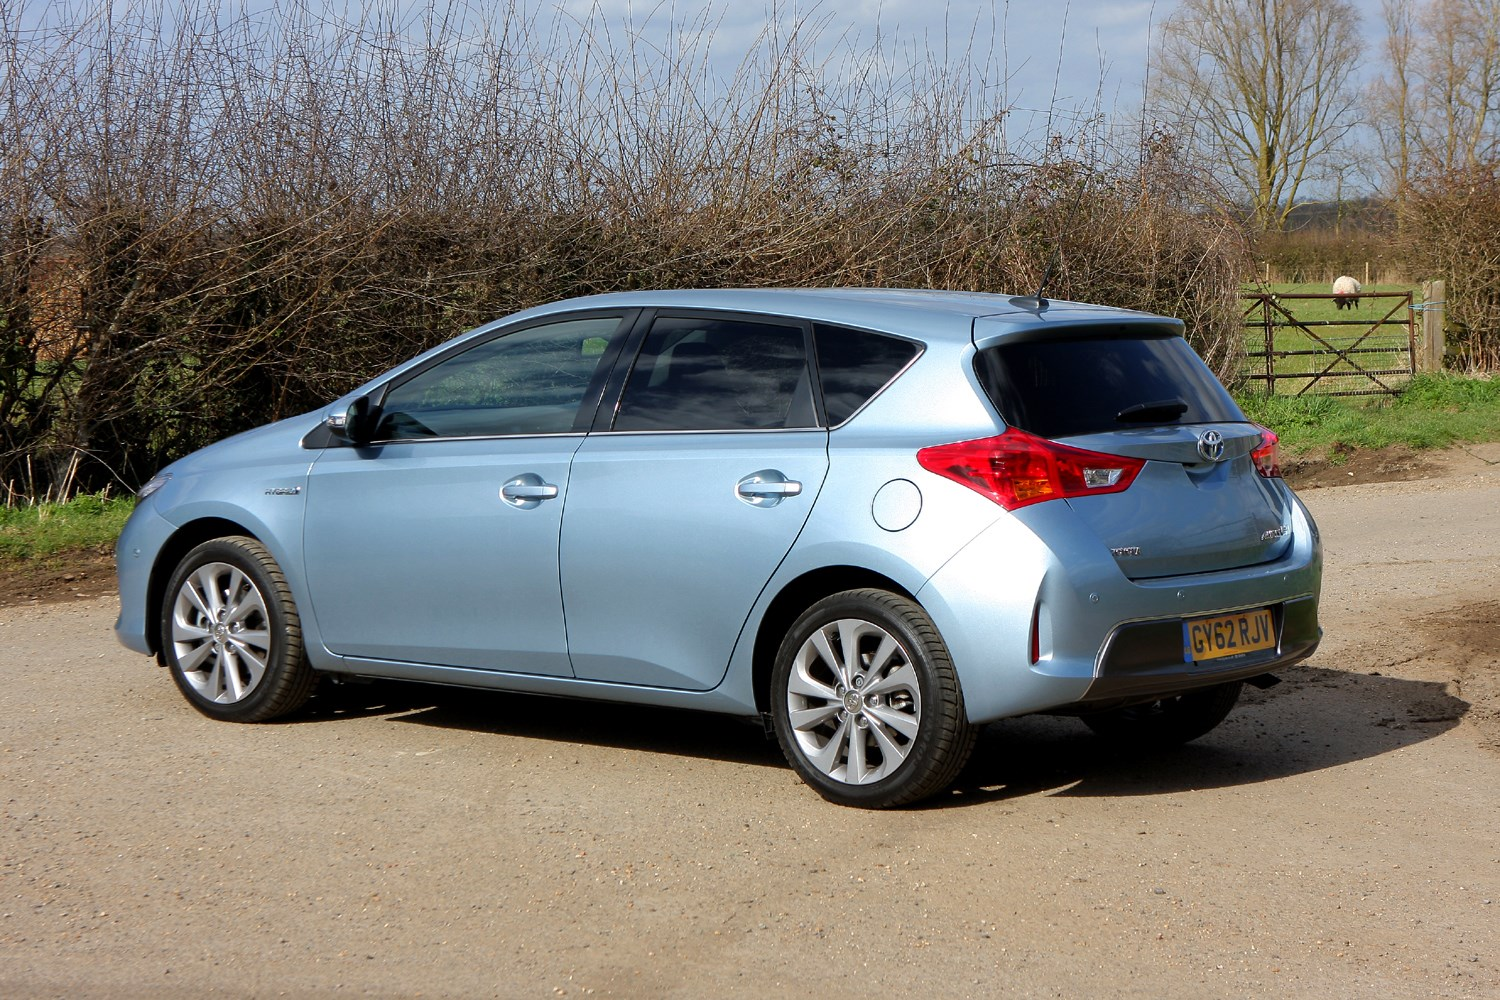 toyota auris hatchback review 2012 parkers. Black Bedroom Furniture Sets. Home Design Ideas